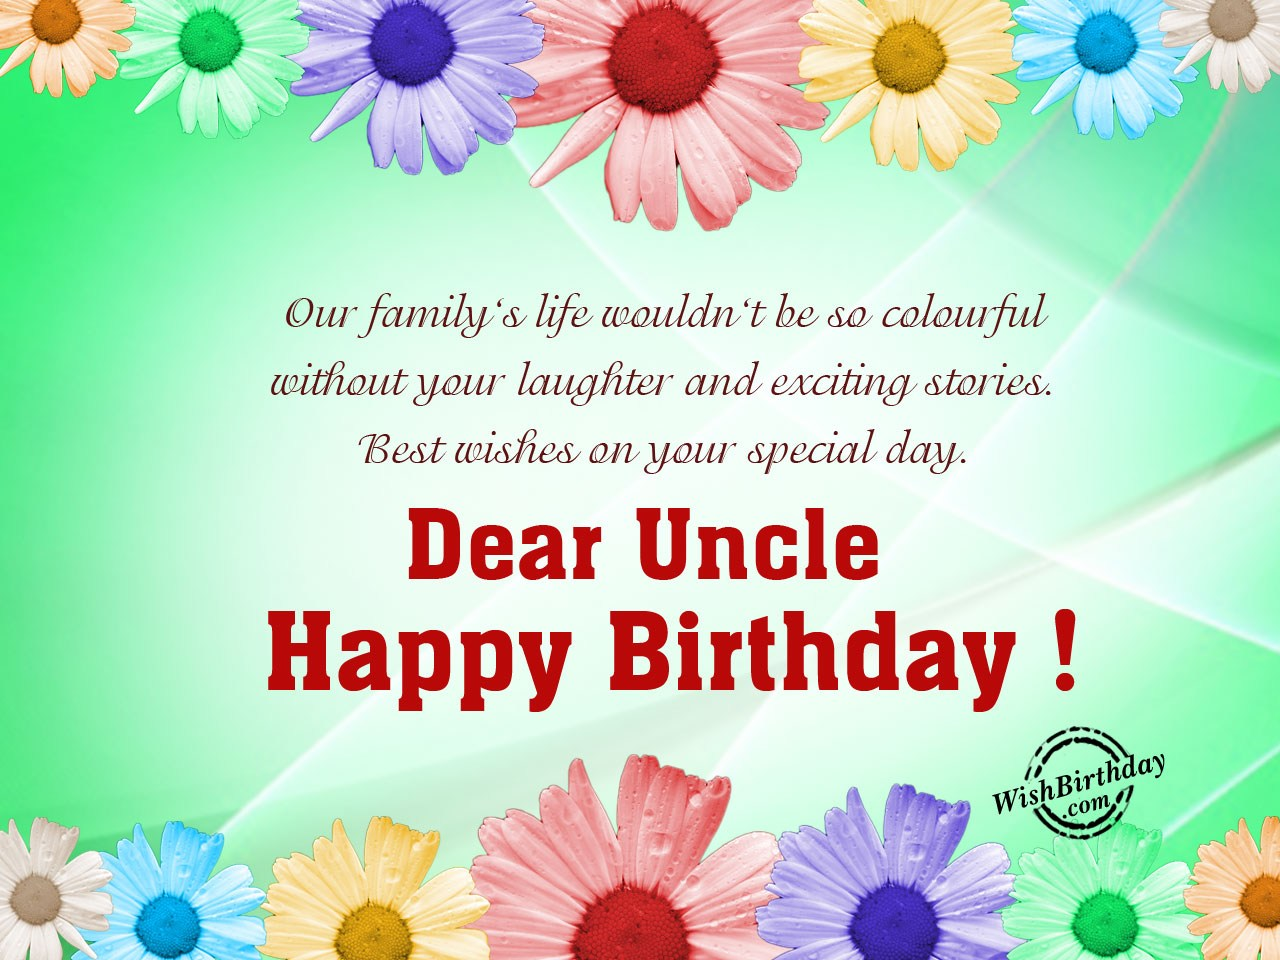 Dear Uncle Happy Birthday Our Familys Life Wouldnt Be So Colorful